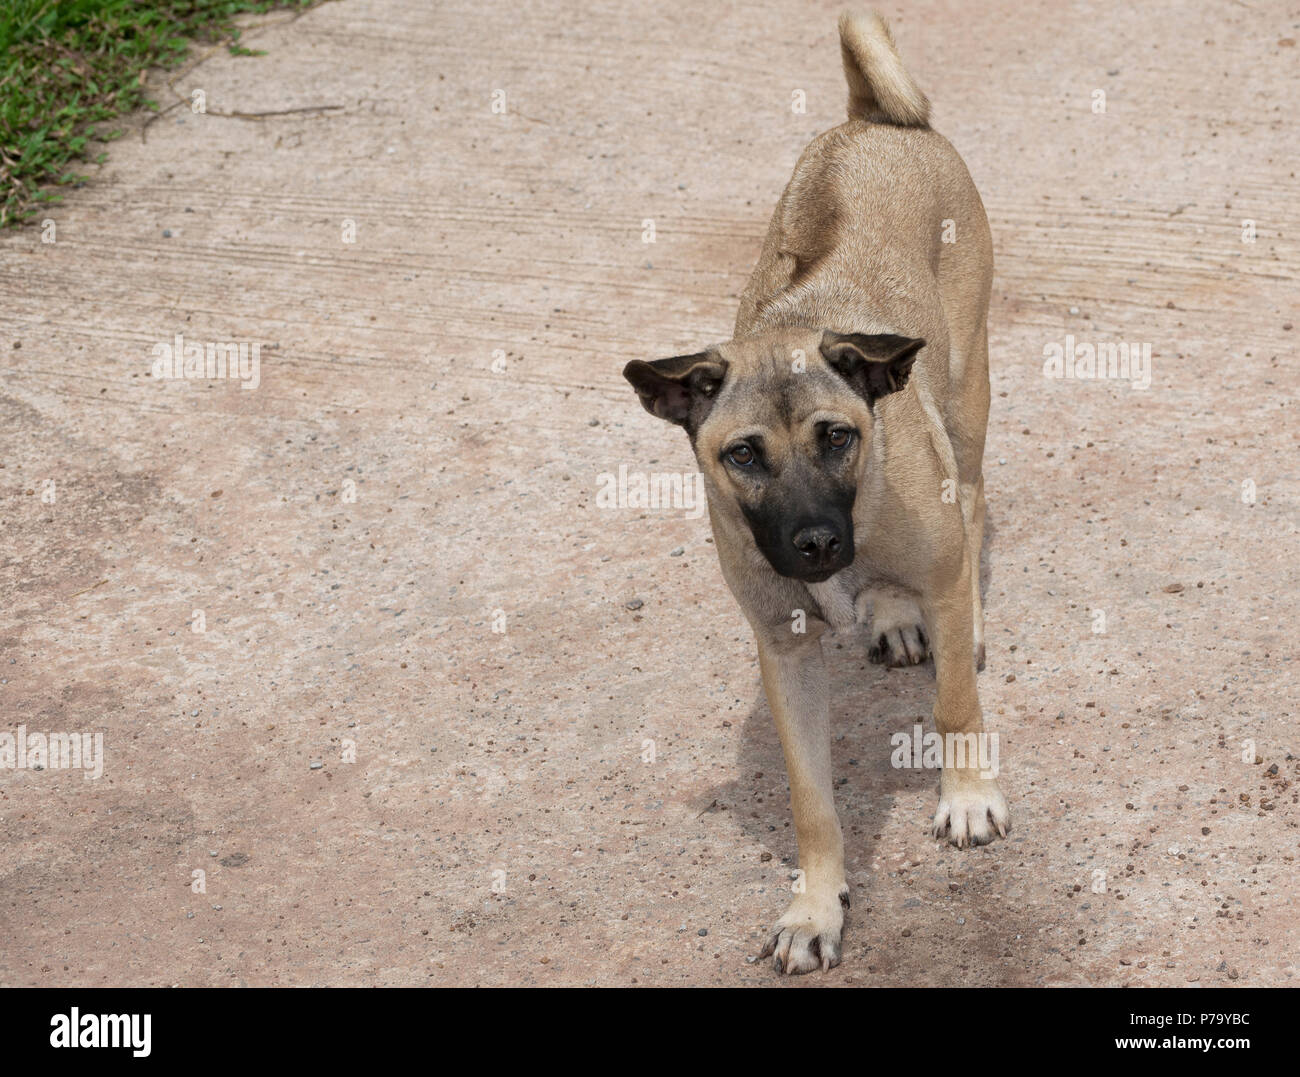 Thai Ridgeback male dog (Canis) mixed breed wheaten colour black nose standing on concrete road in Udon Thani, Isaan, North East Thailand - Stock Image